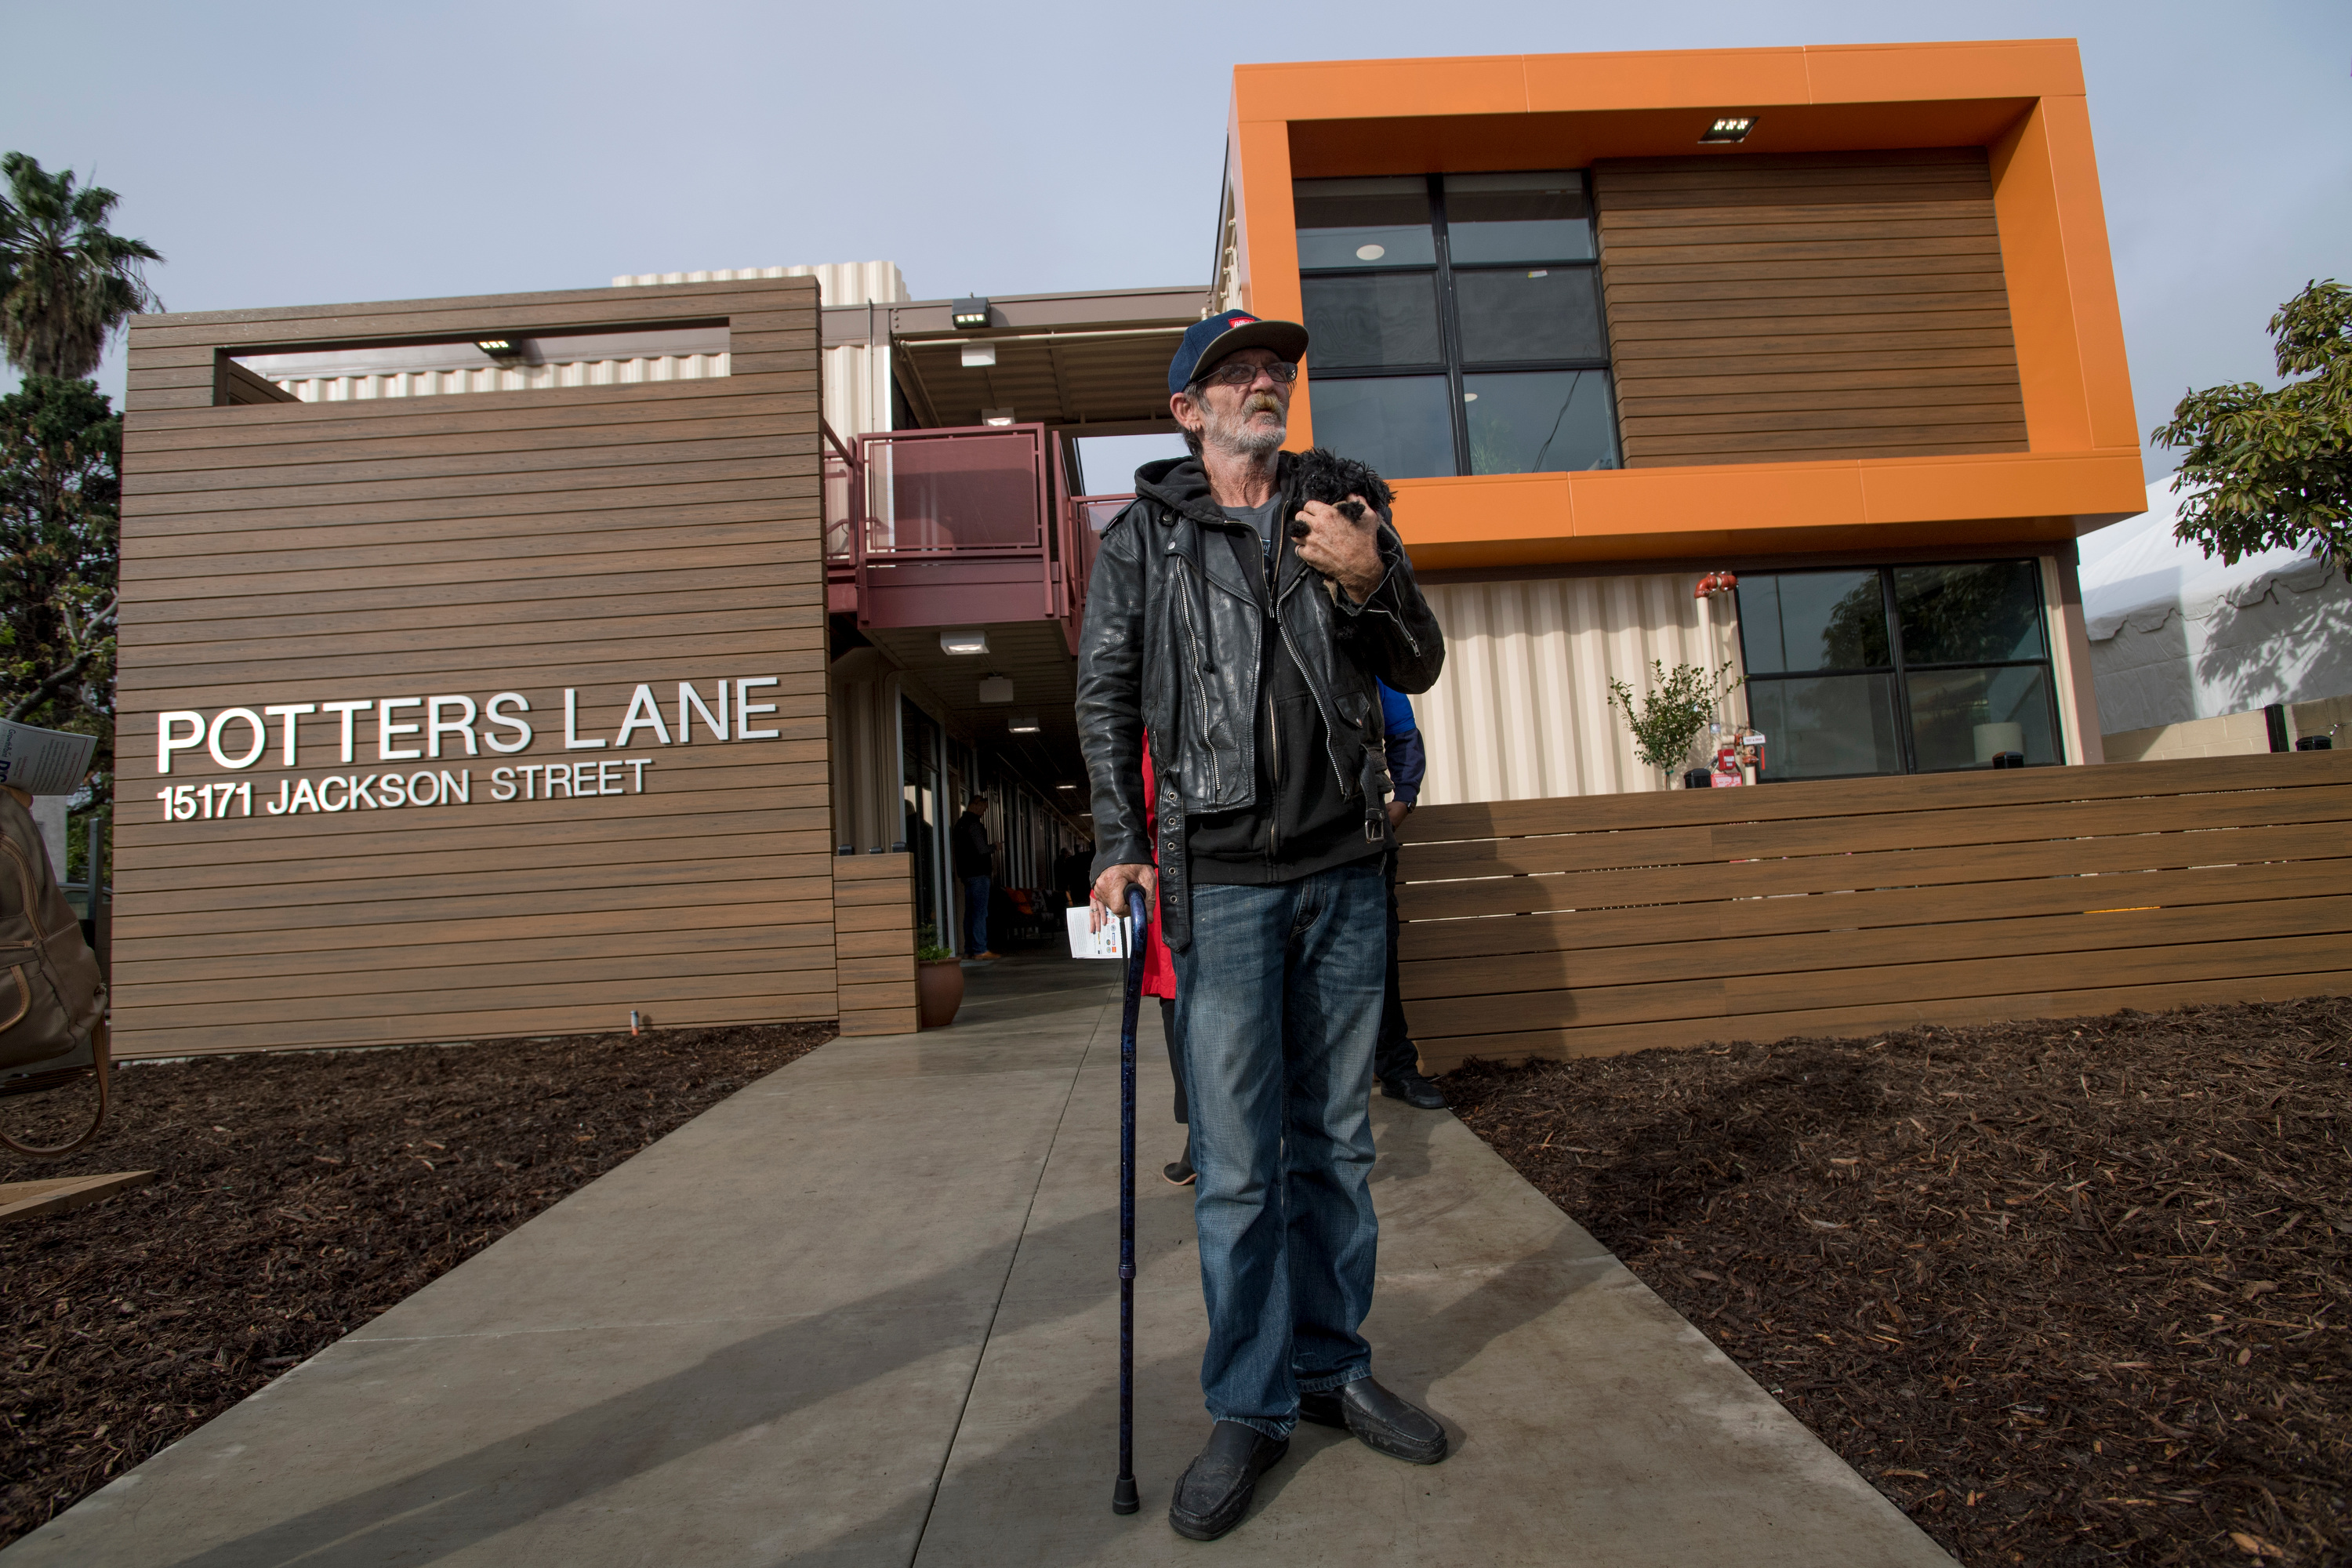 Somos primos potters lane complex in midway city will house 15 residents in units made from cargo containers by theresa walker the orange county register fandeluxe Choice Image